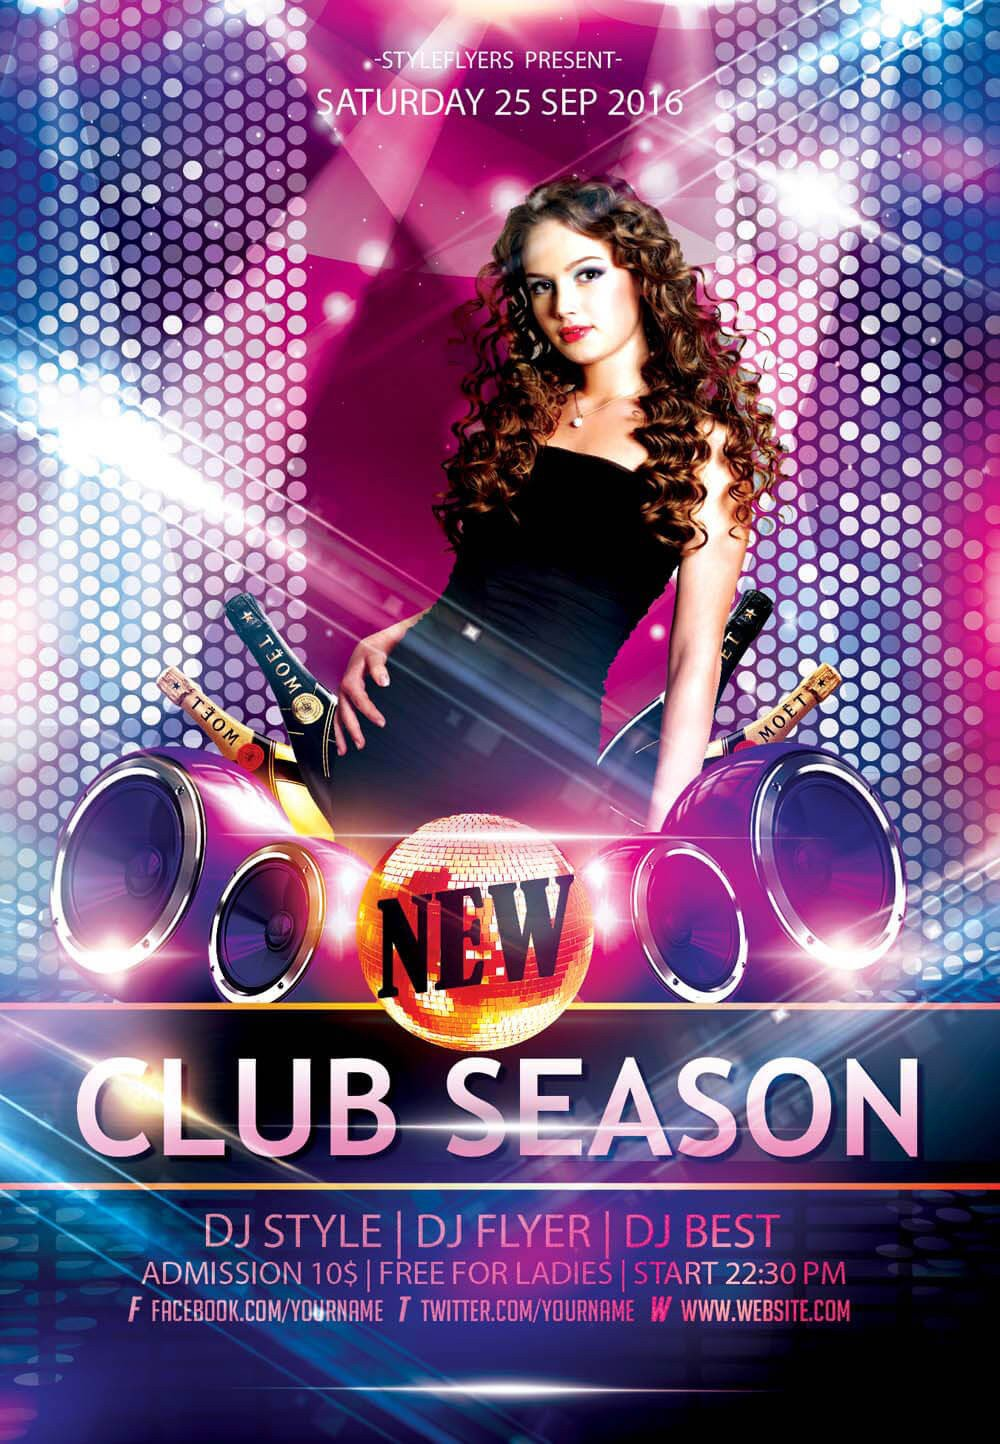 Club Flyer Background Templates New Party Season Free Psd Flyer Templates Graphicsfuel